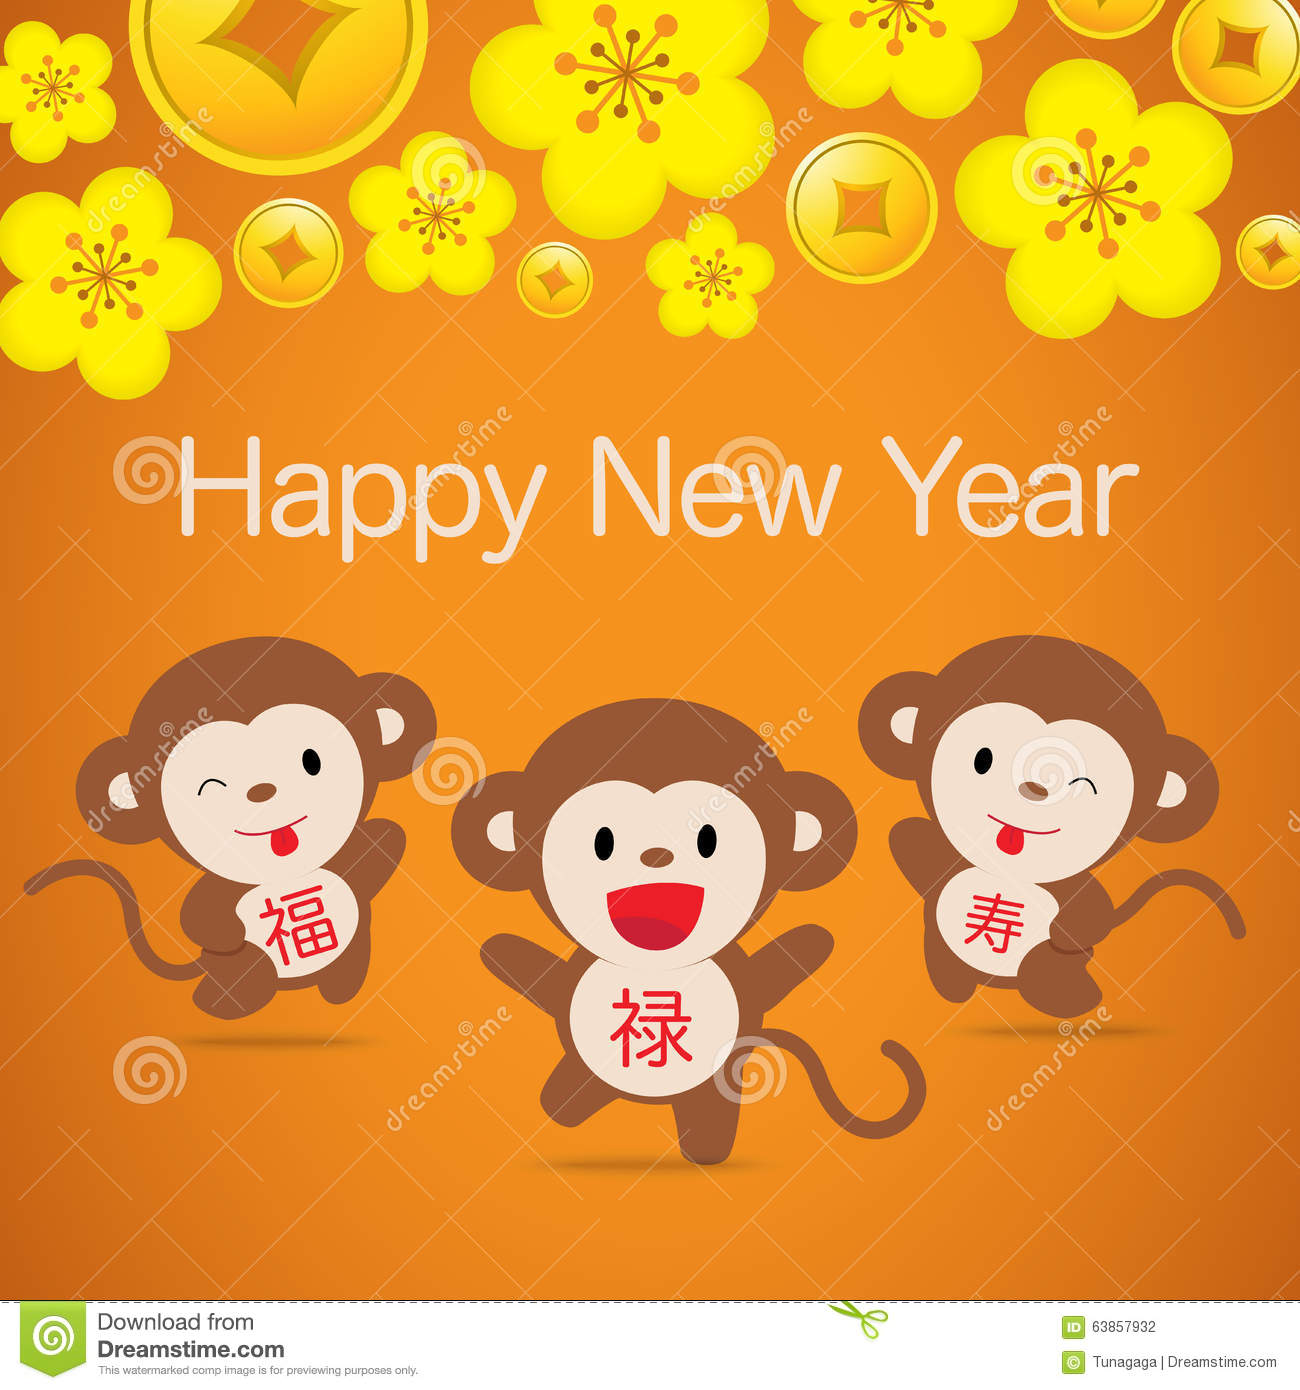 2016 Monkey Chinese New Year Greeting Card Design Stock Vector